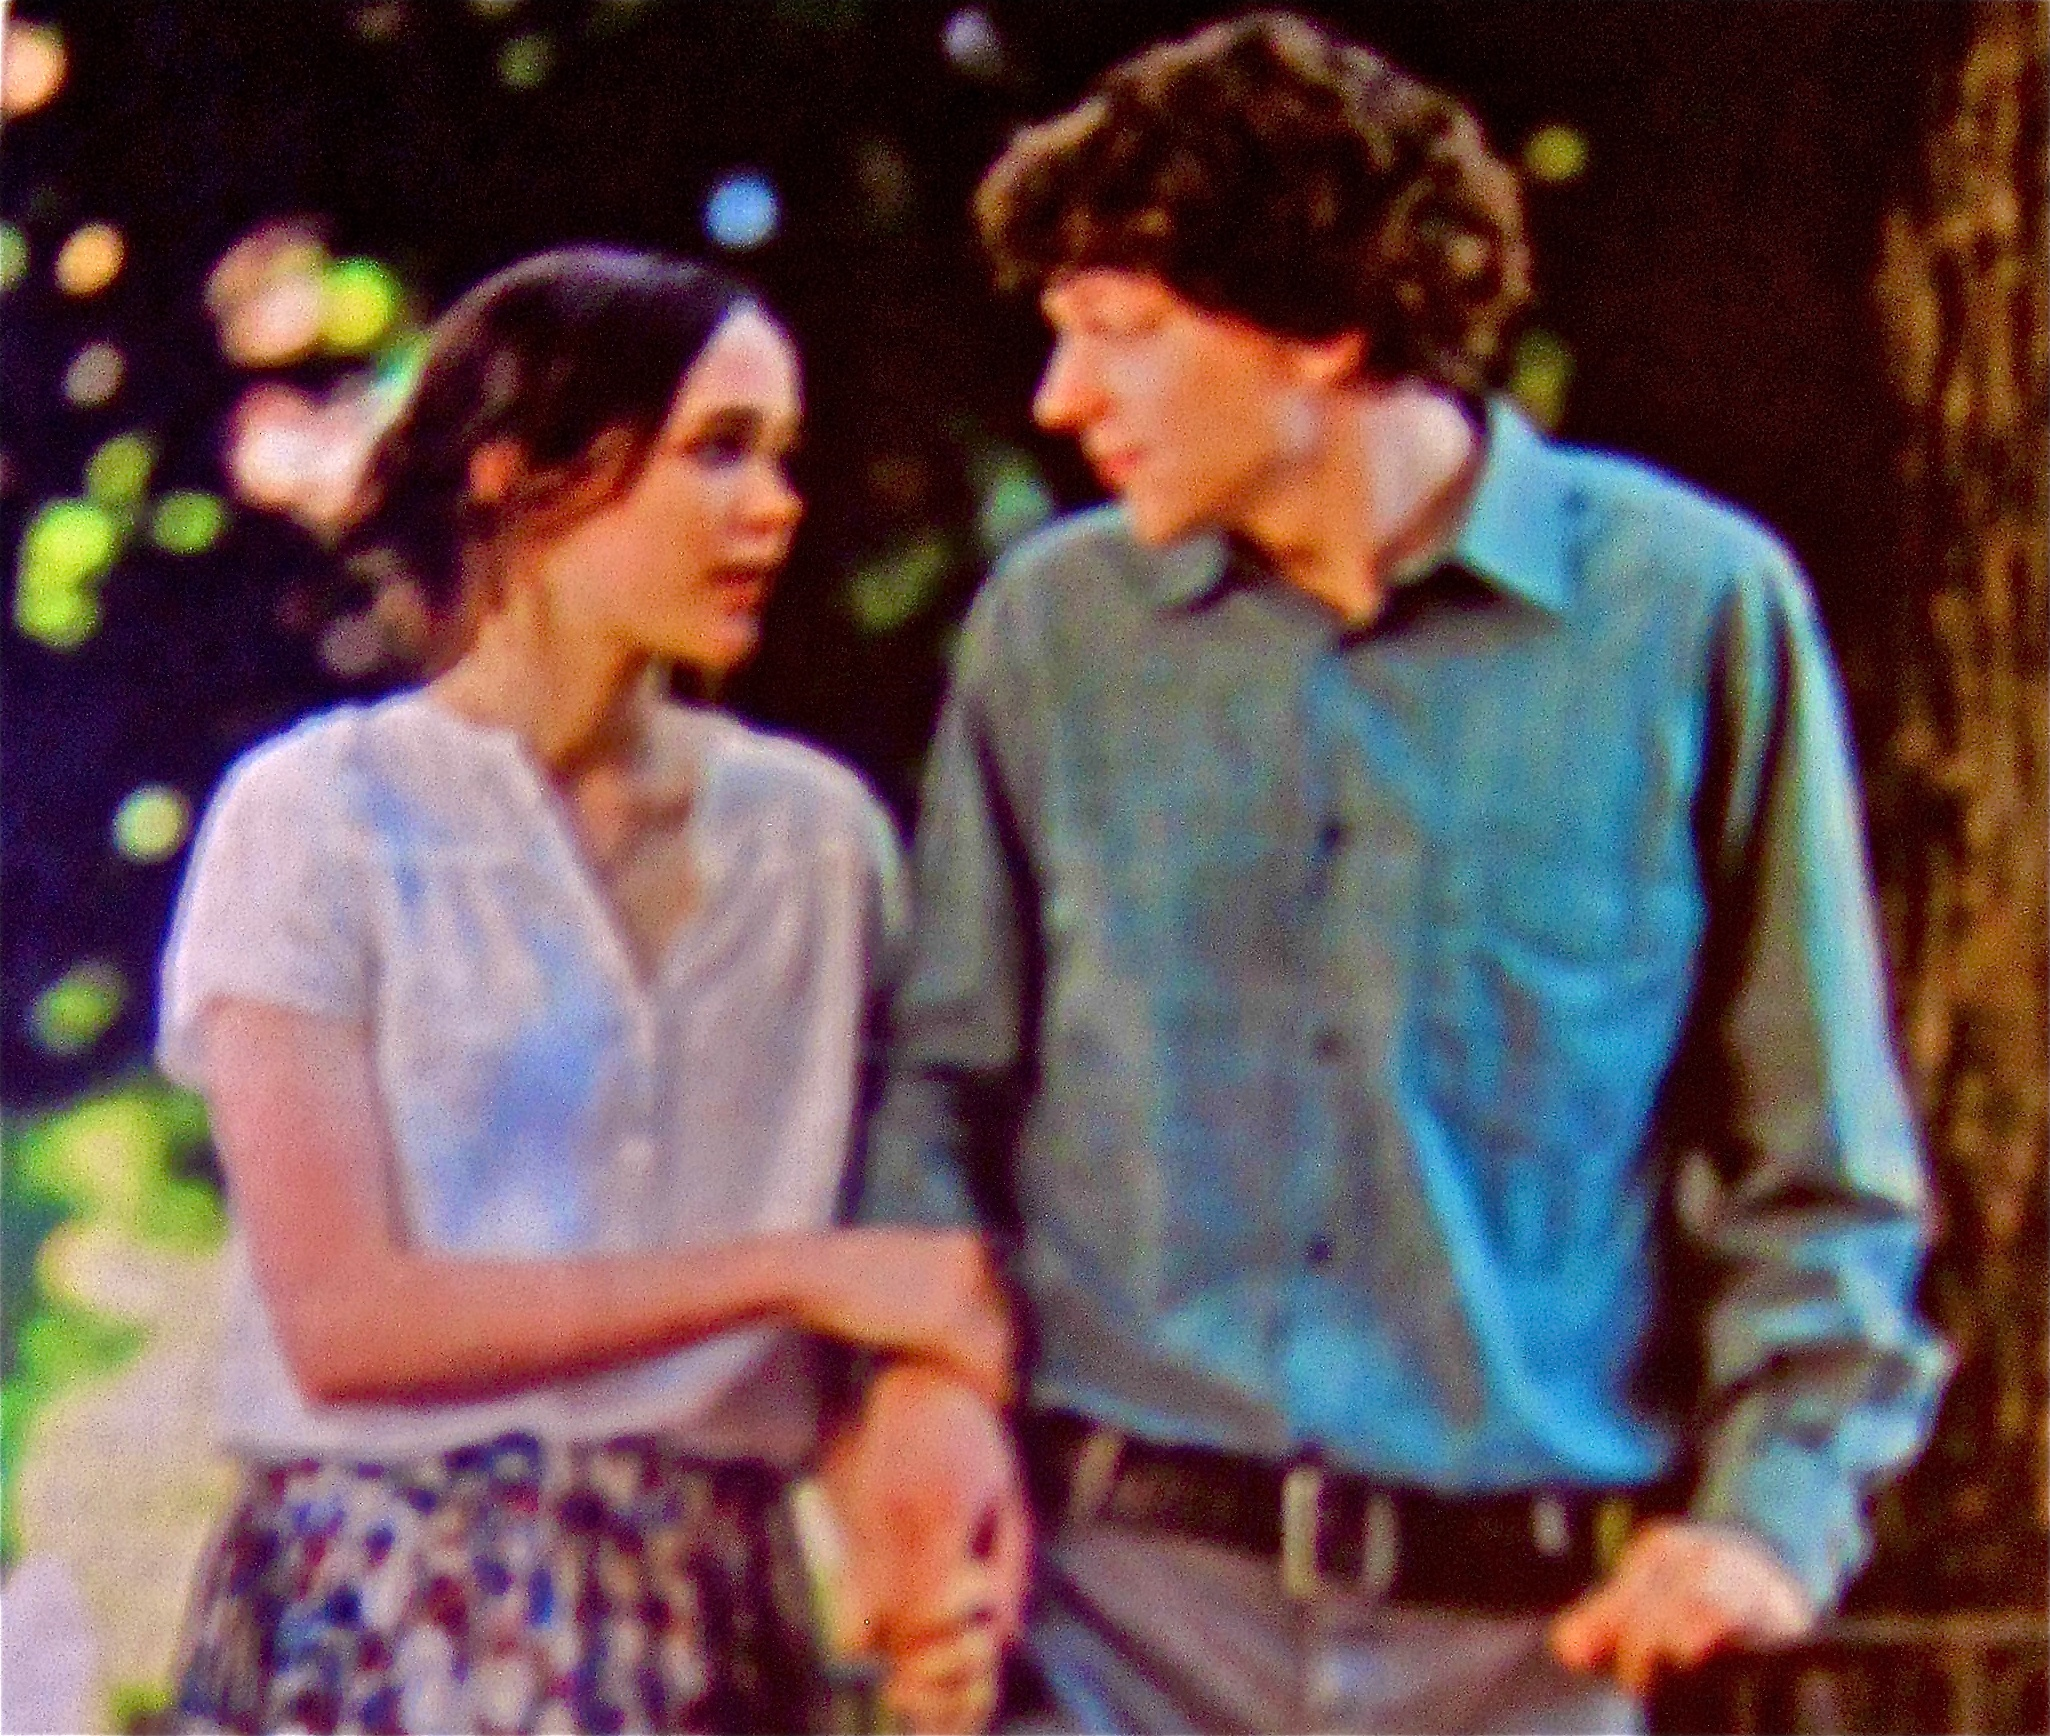 ellen page and Jesse eisenberg